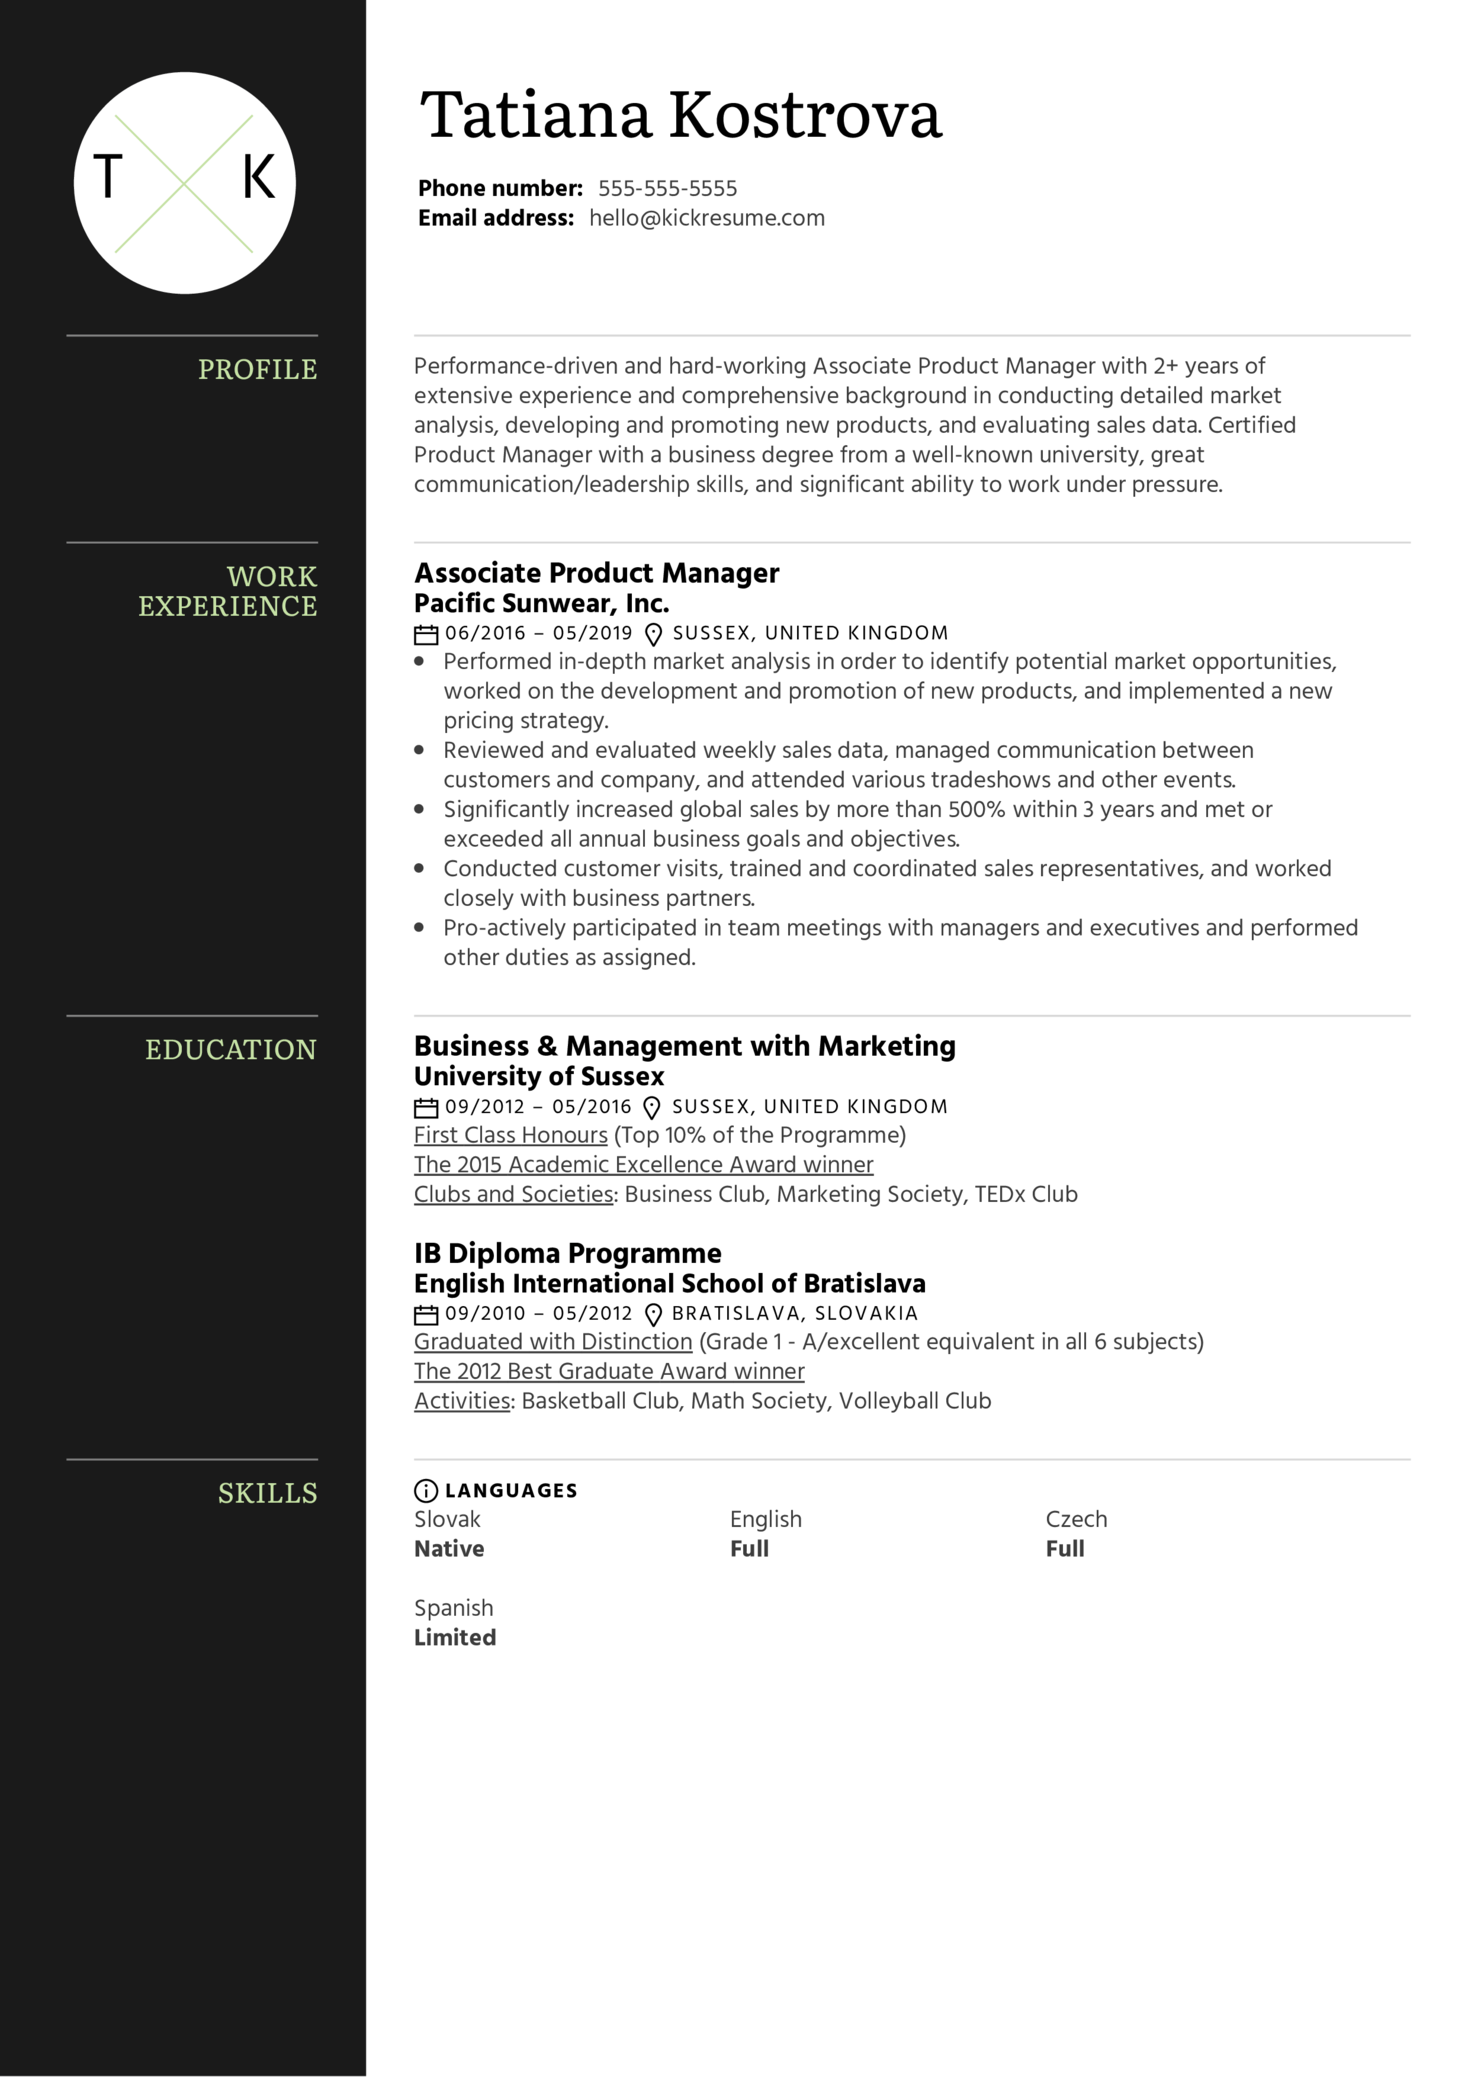 Associate Product Manager Resume Example (Teil 1)